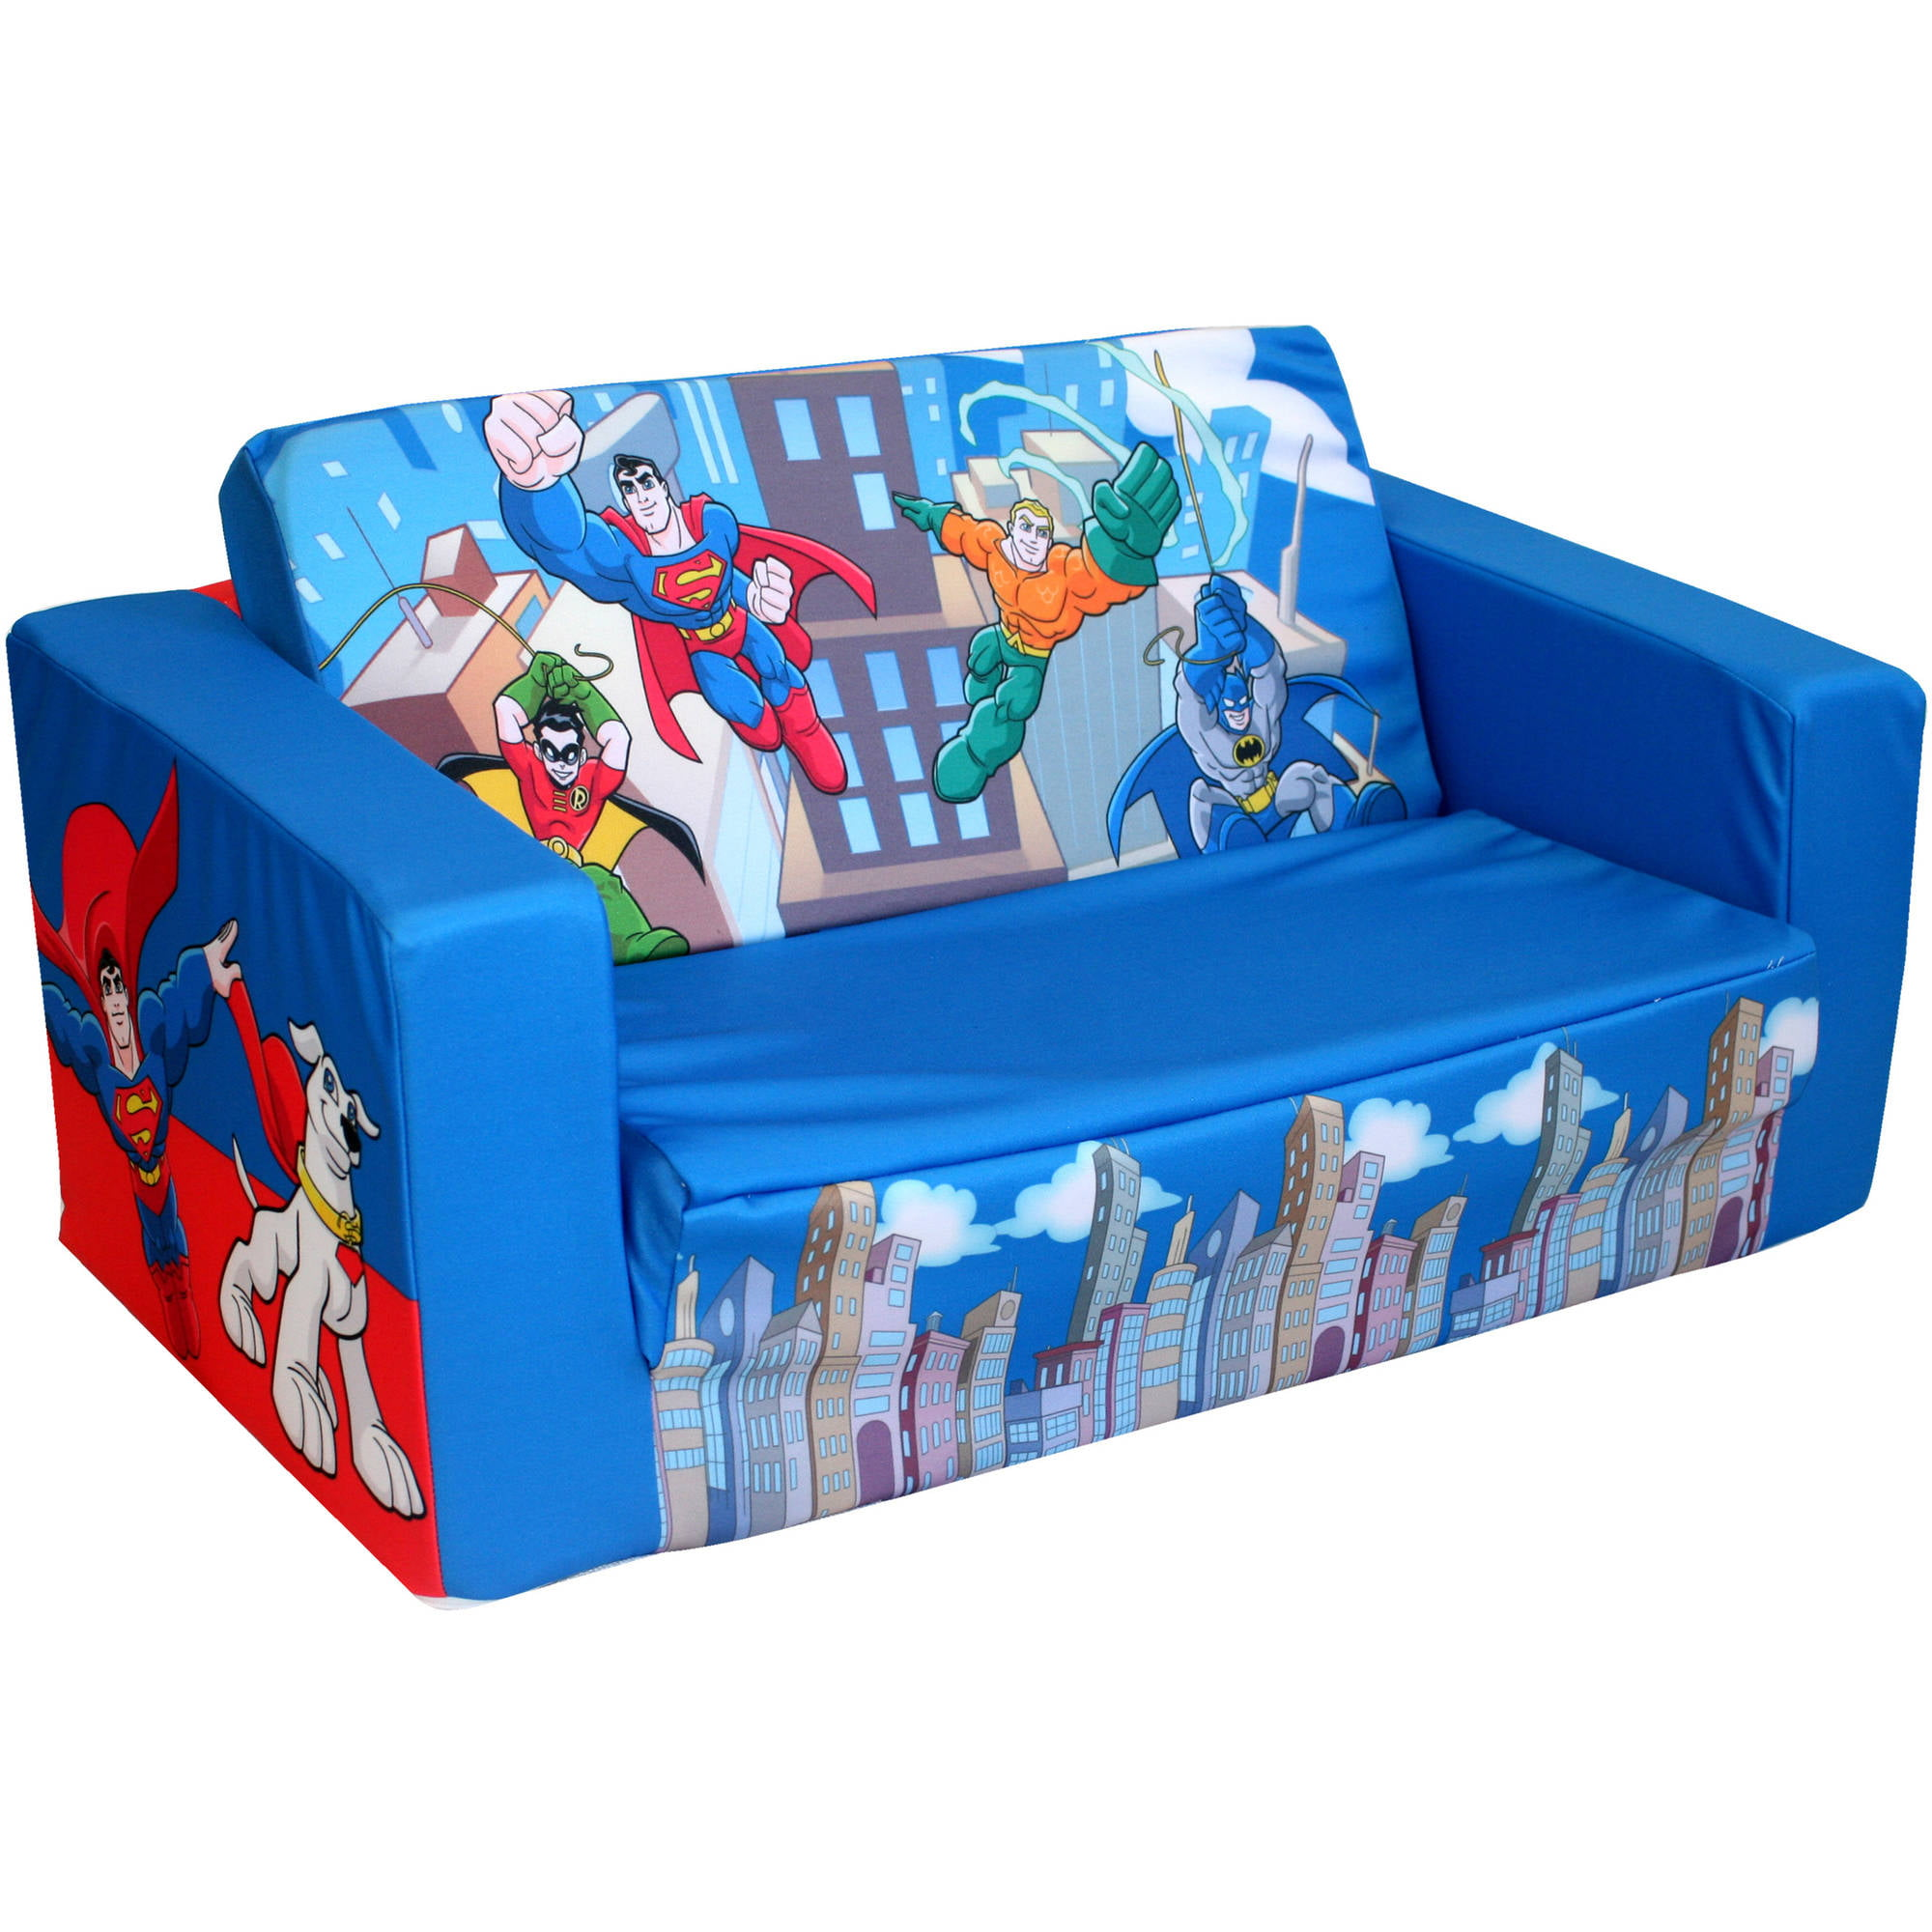 Flip Sofas Marshmallow Furniture Children S 2 In 1 Flip Open Foam Sofa Thesofa